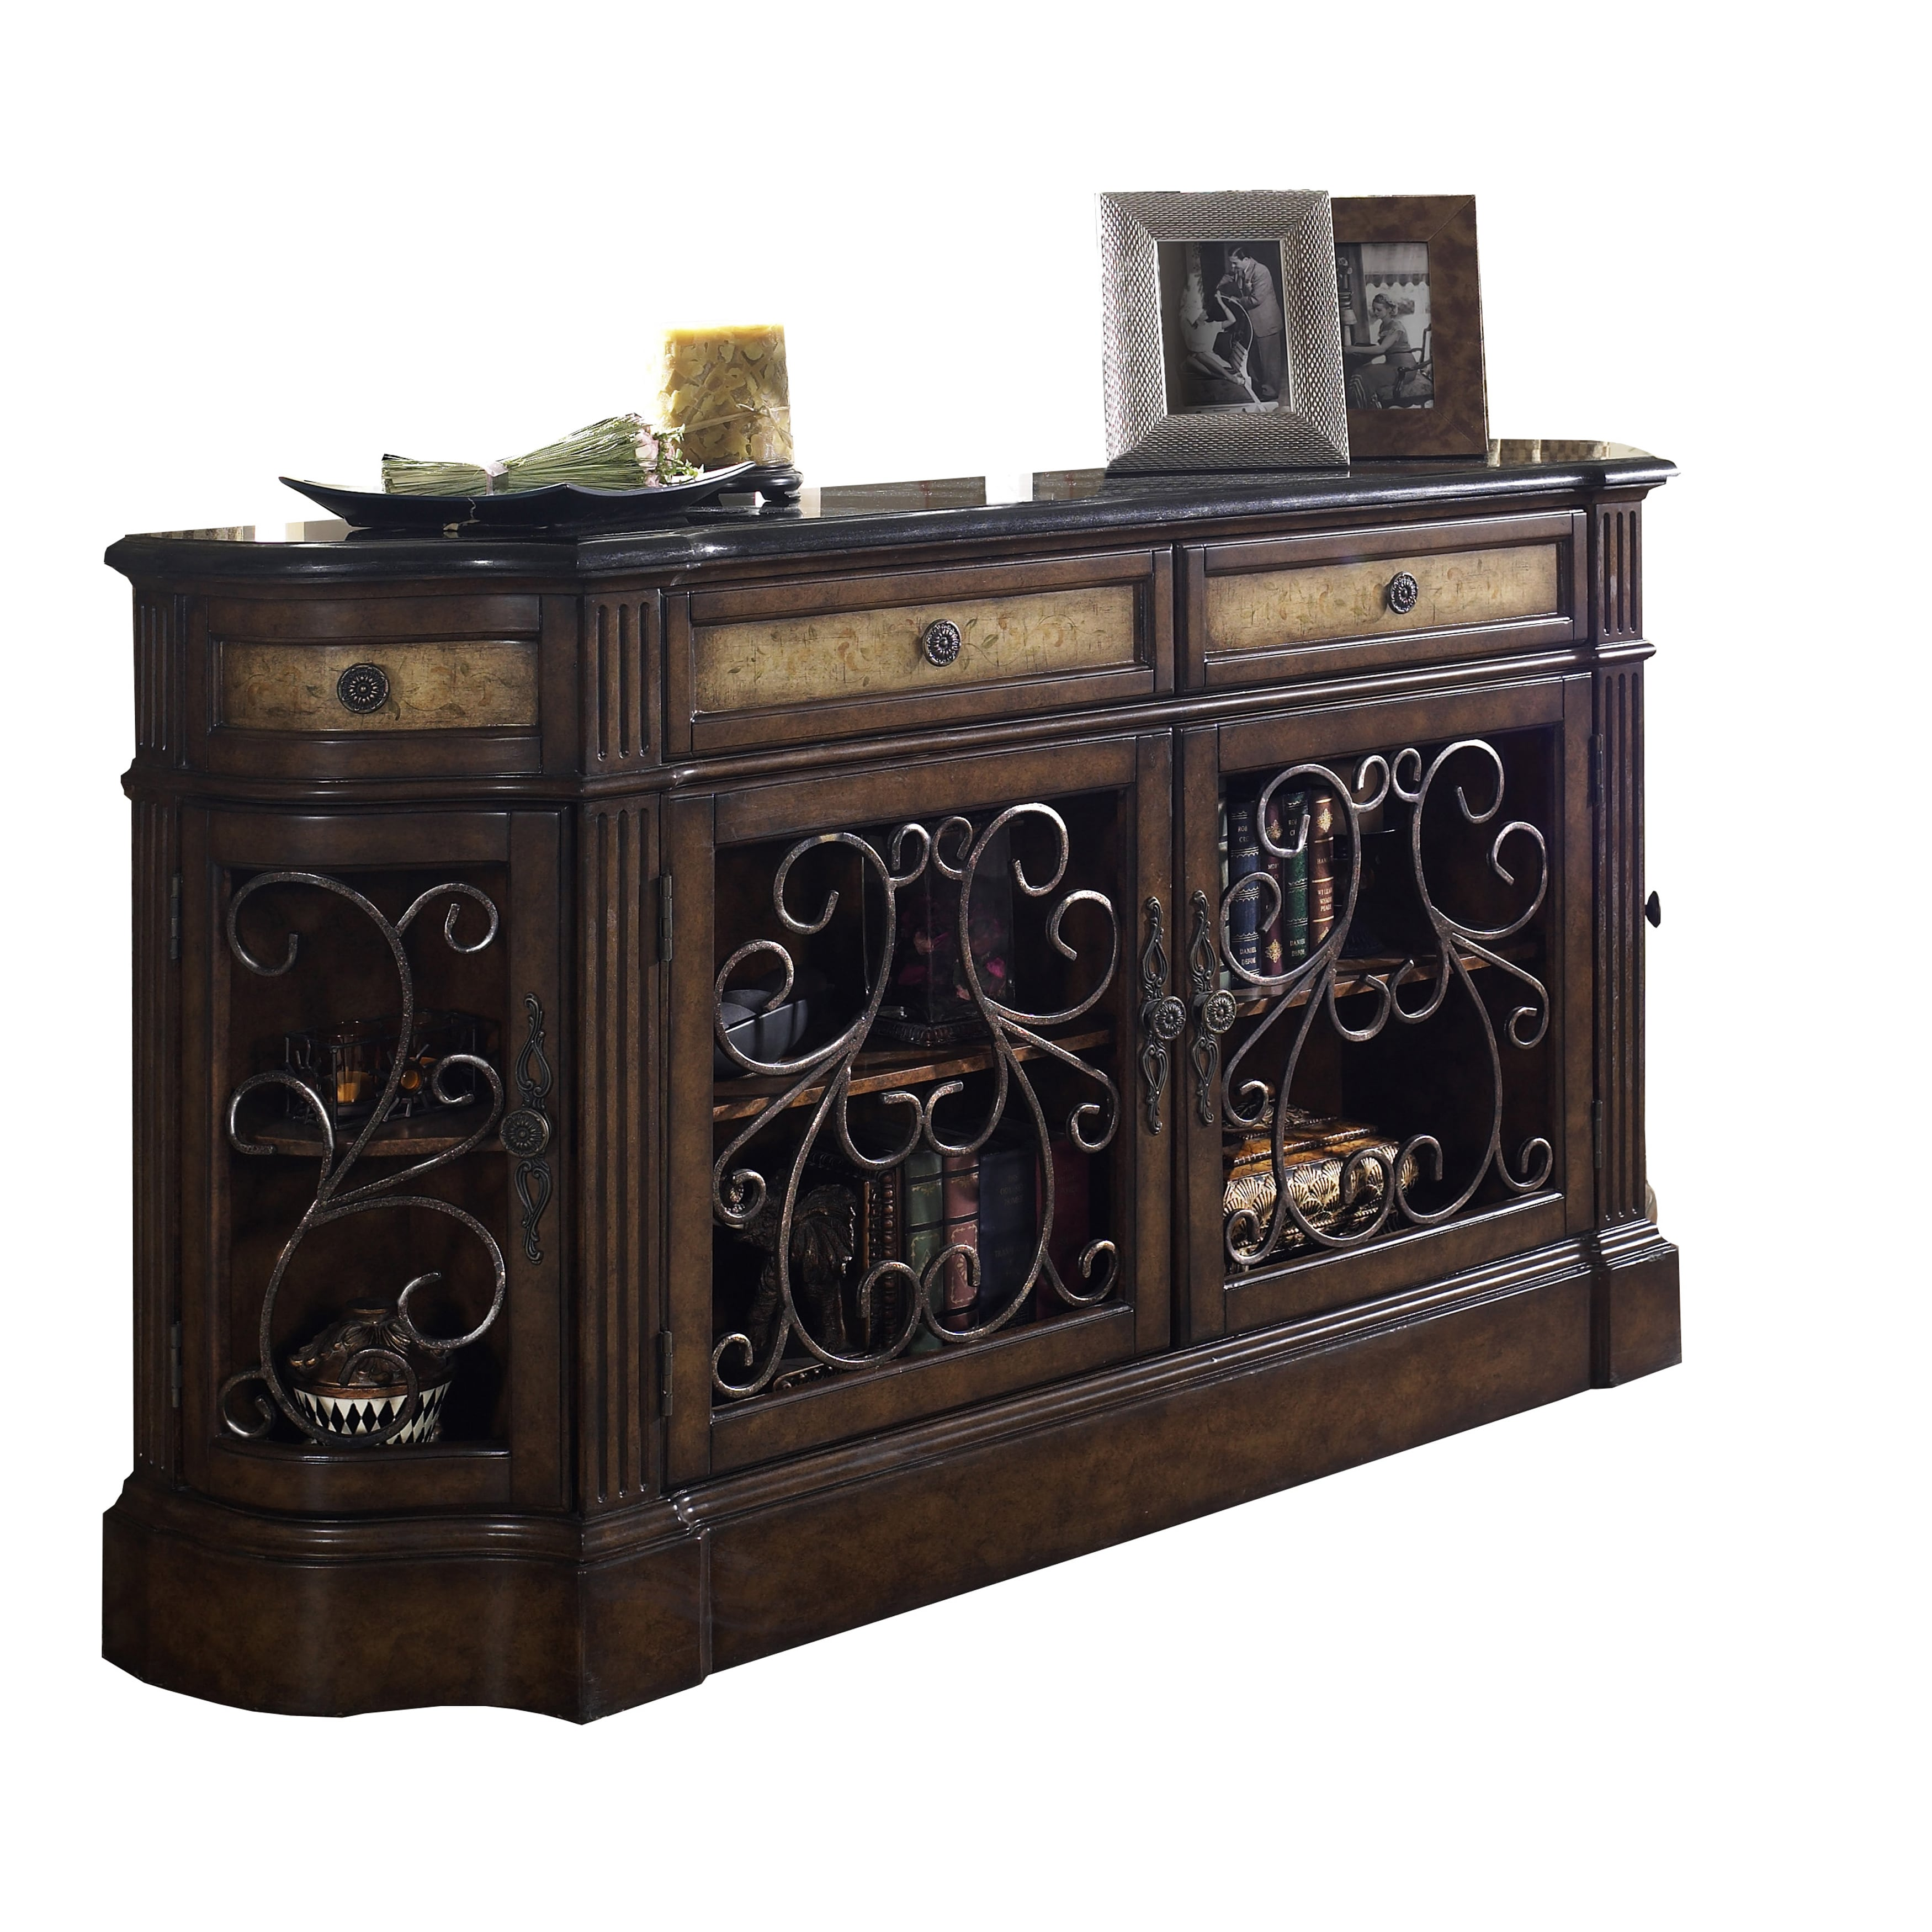 Sofaweb.com Hand-painted Distressed Carmel Brown Credenza